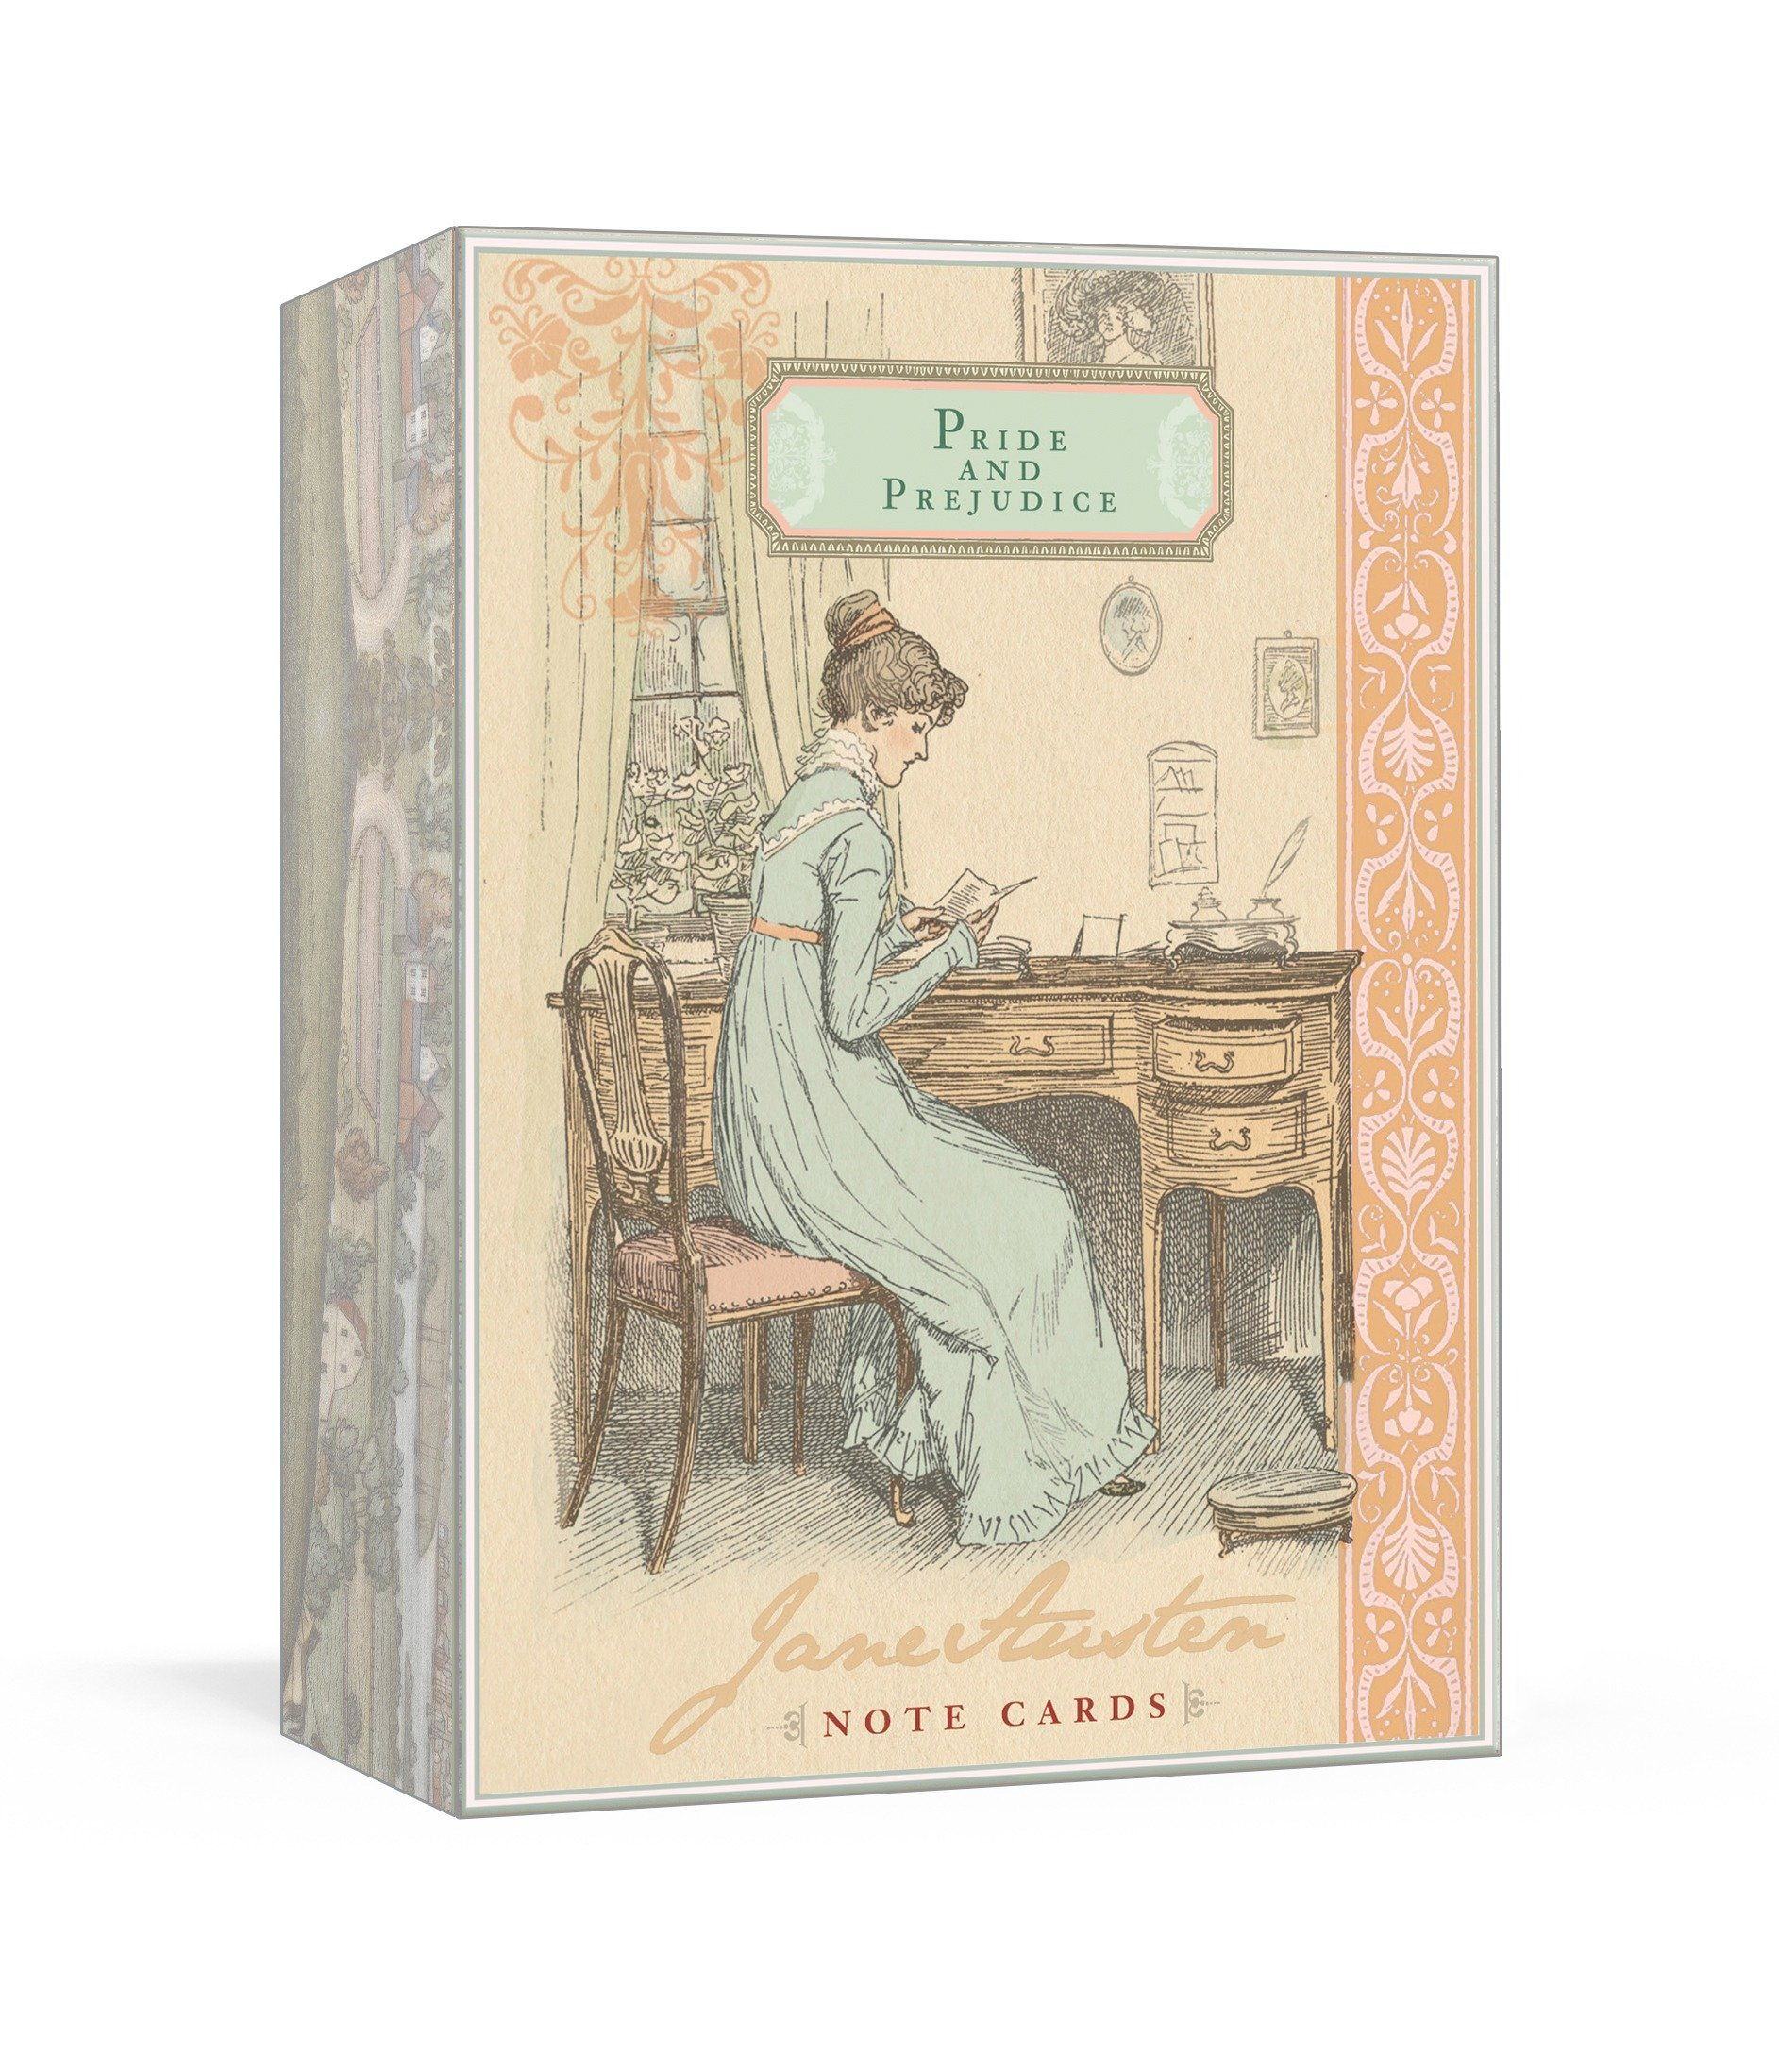 Jane Austen Note Cards - Pride and Prejudice by Potter Style